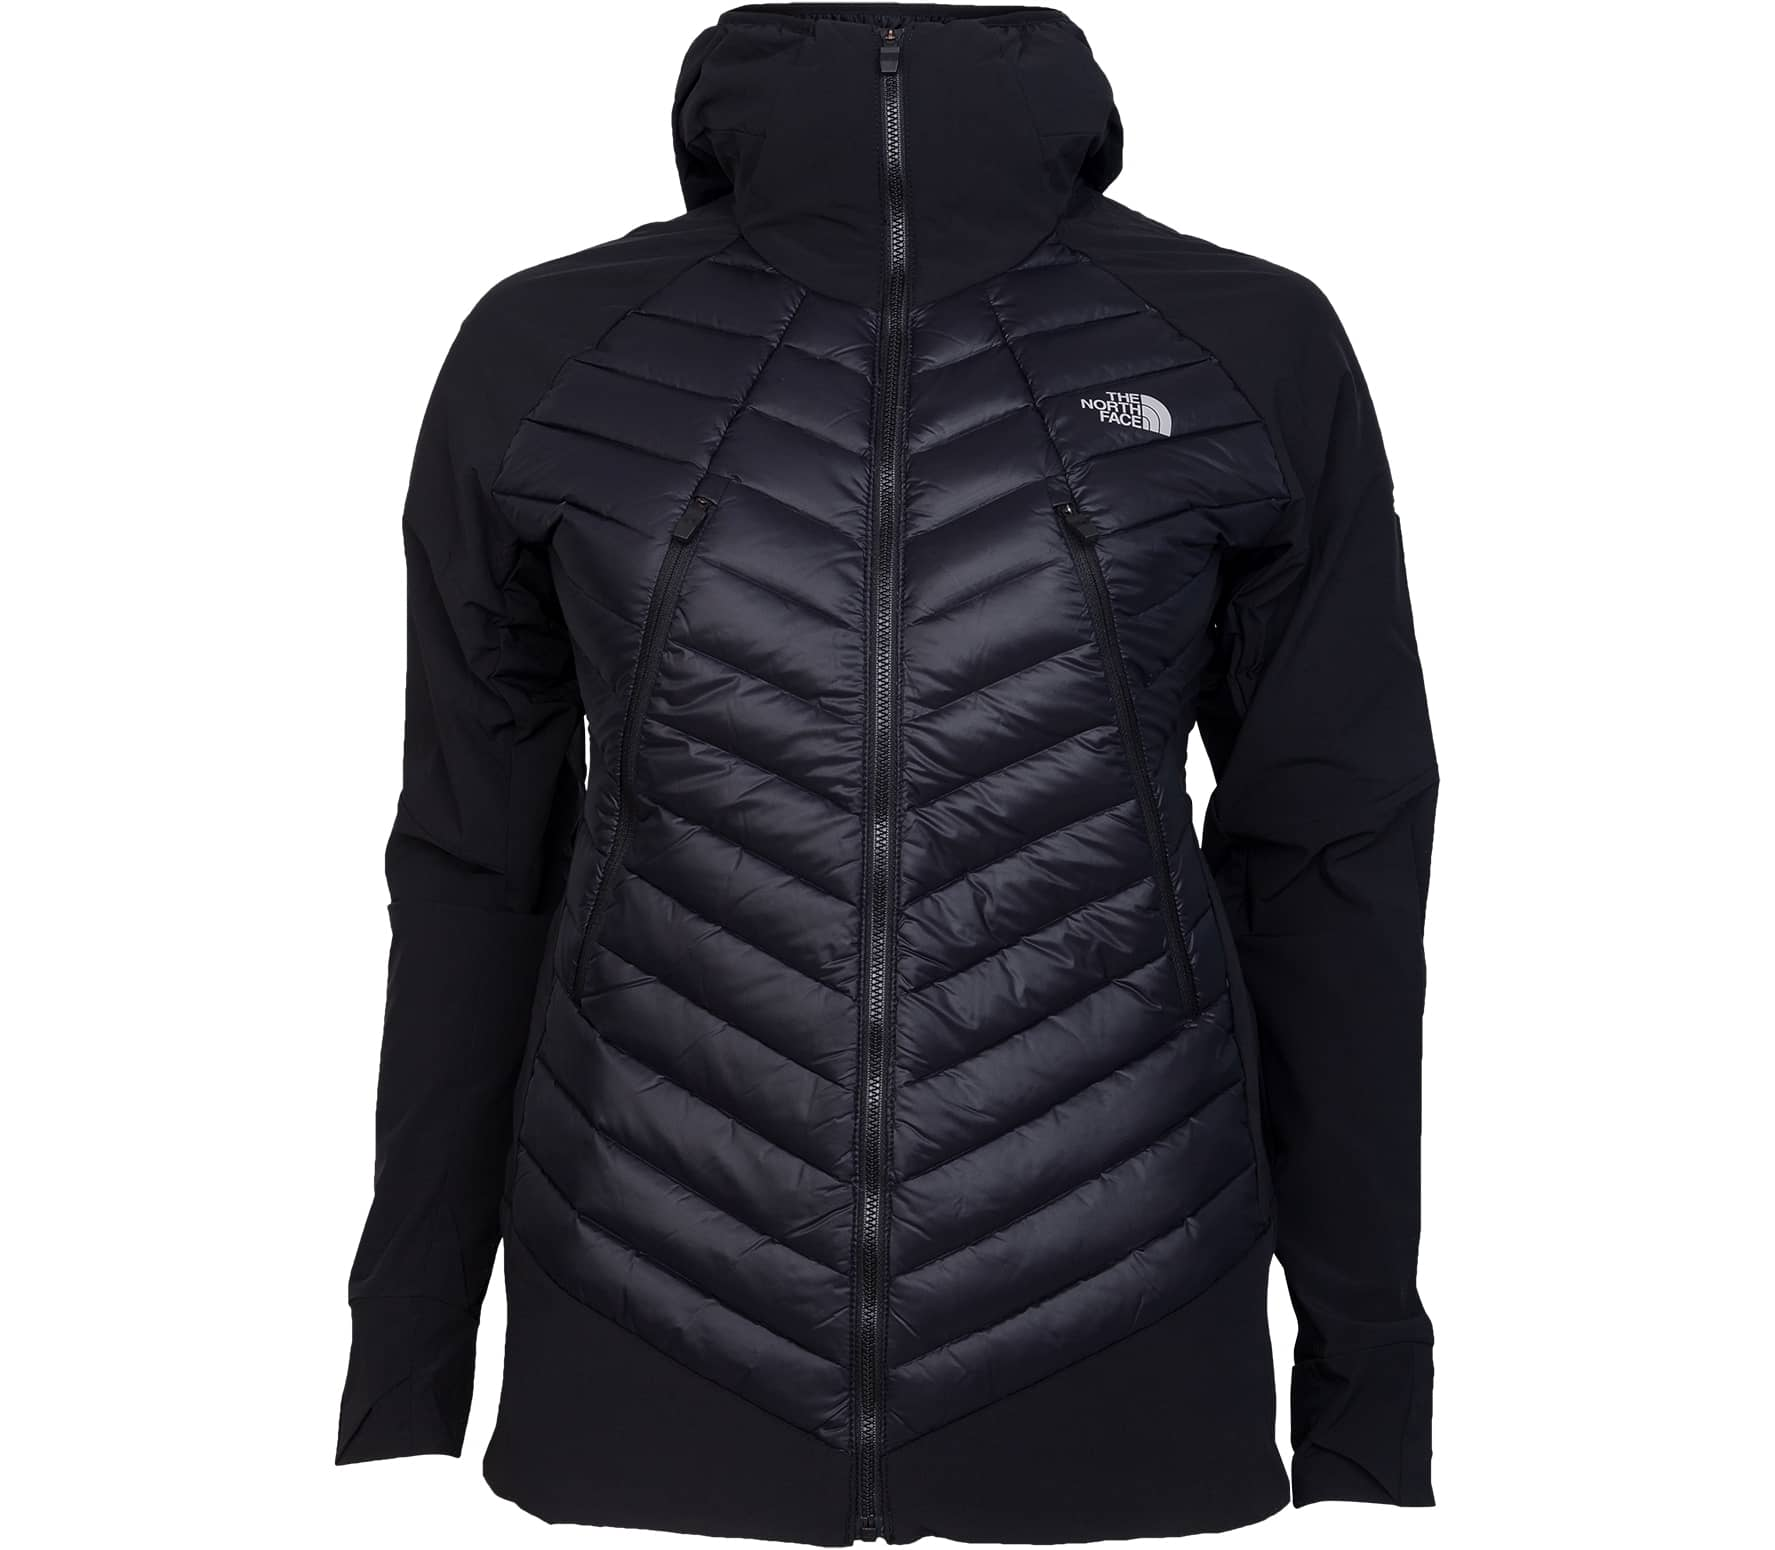 1fab4c6eb6b1c5 The North Face - Unlimited Damen Skijacke (schwarz) im Online Shop ...